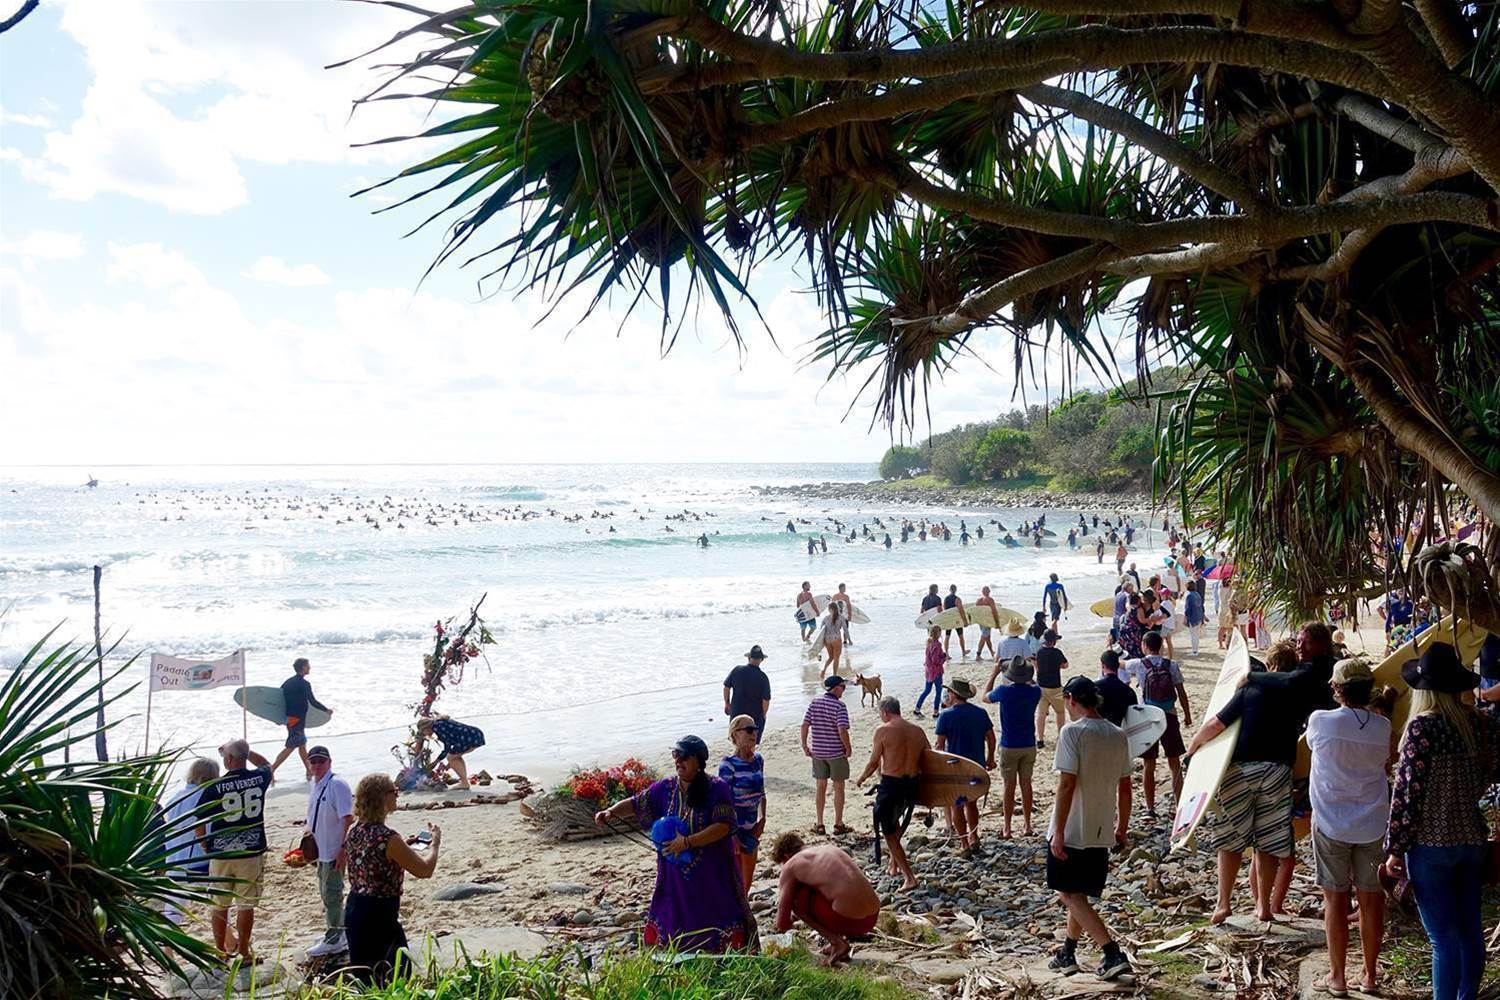 Gallery & Tribute: Baddy's Paddle Out